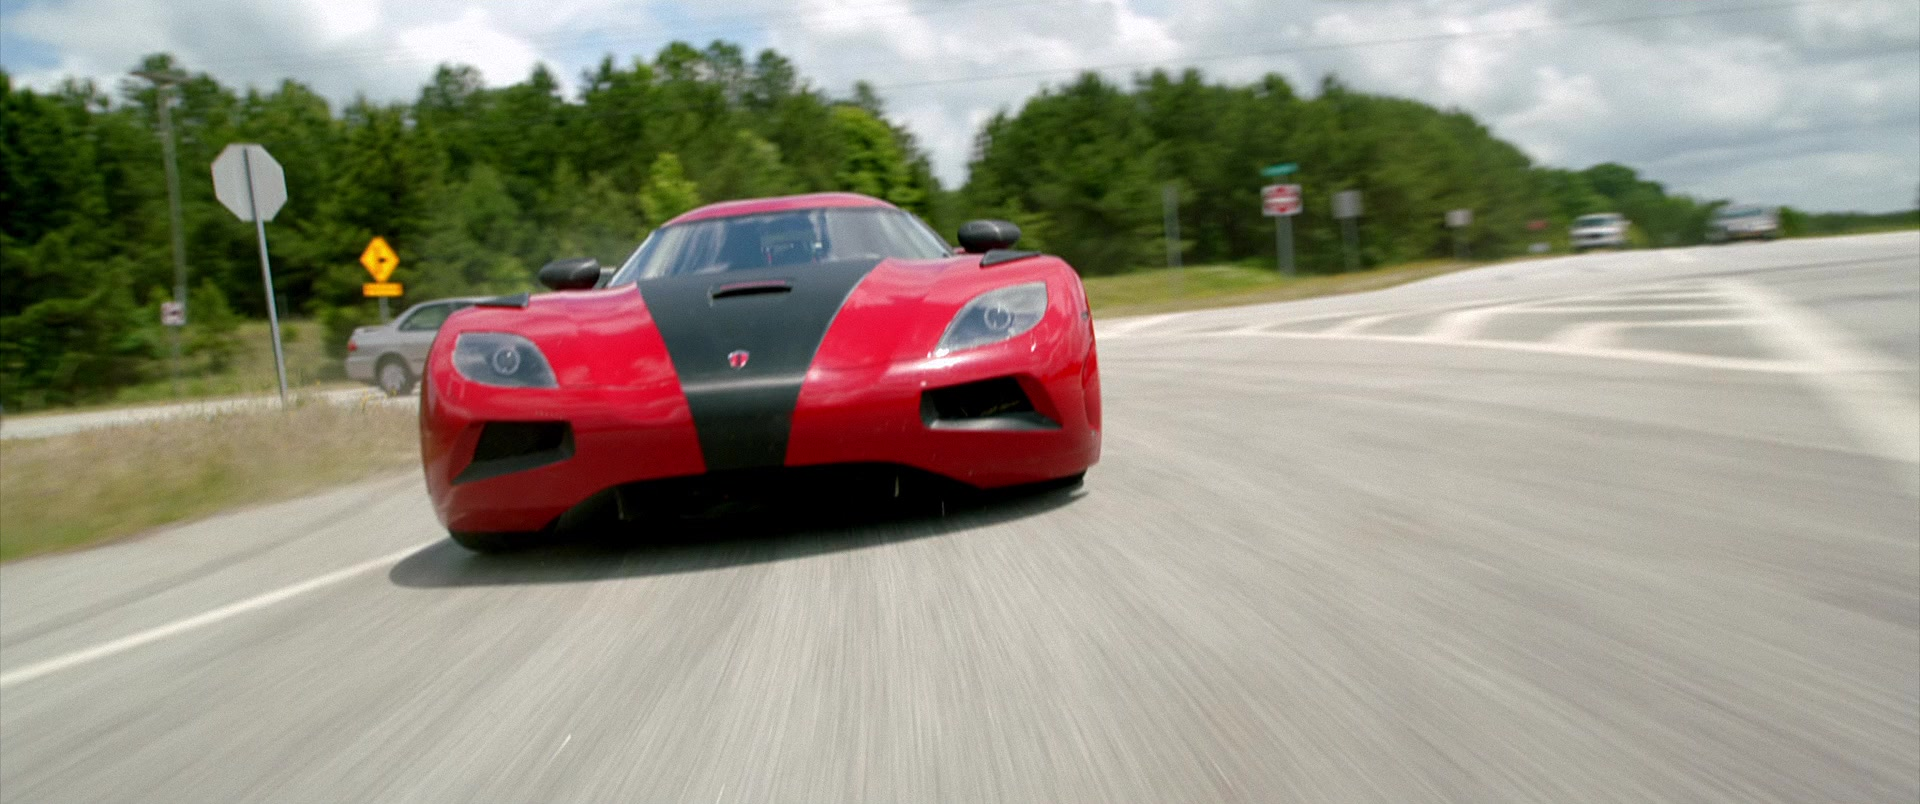 Koenigsegg Agera R Red Sports Car Driven By Dominic Cooper